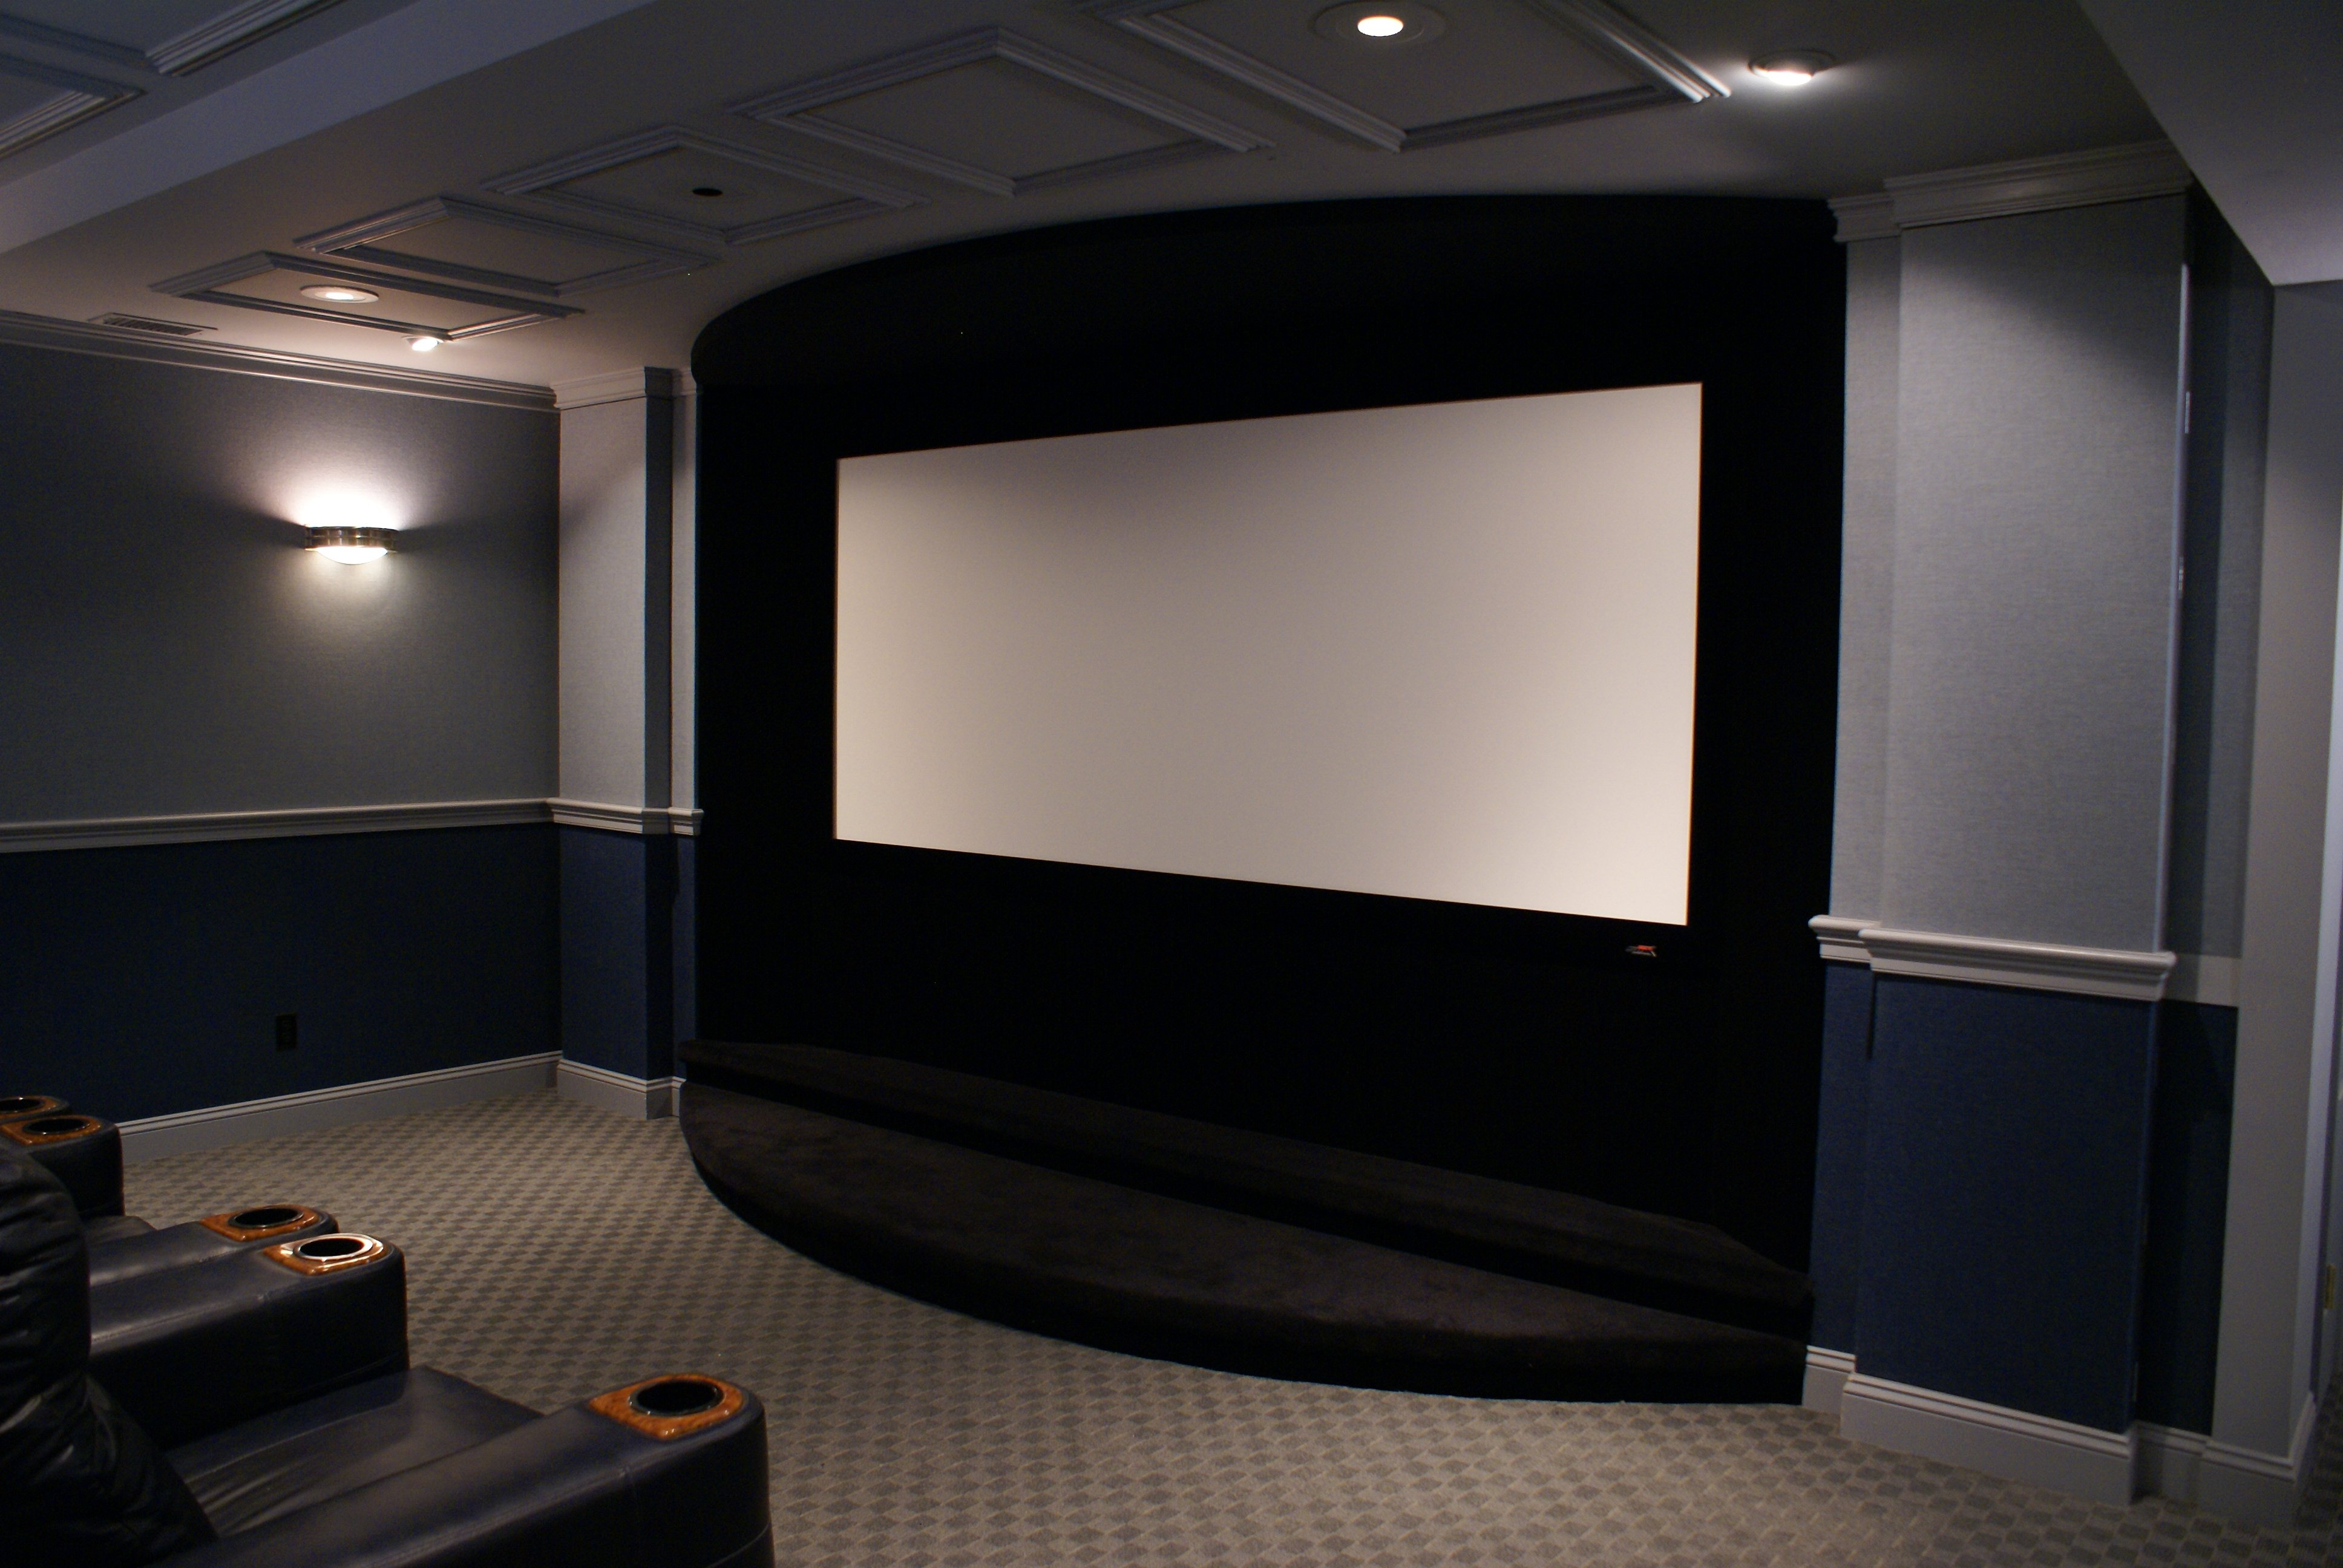 Home Theater Screen Wall Design Home Design Ideas